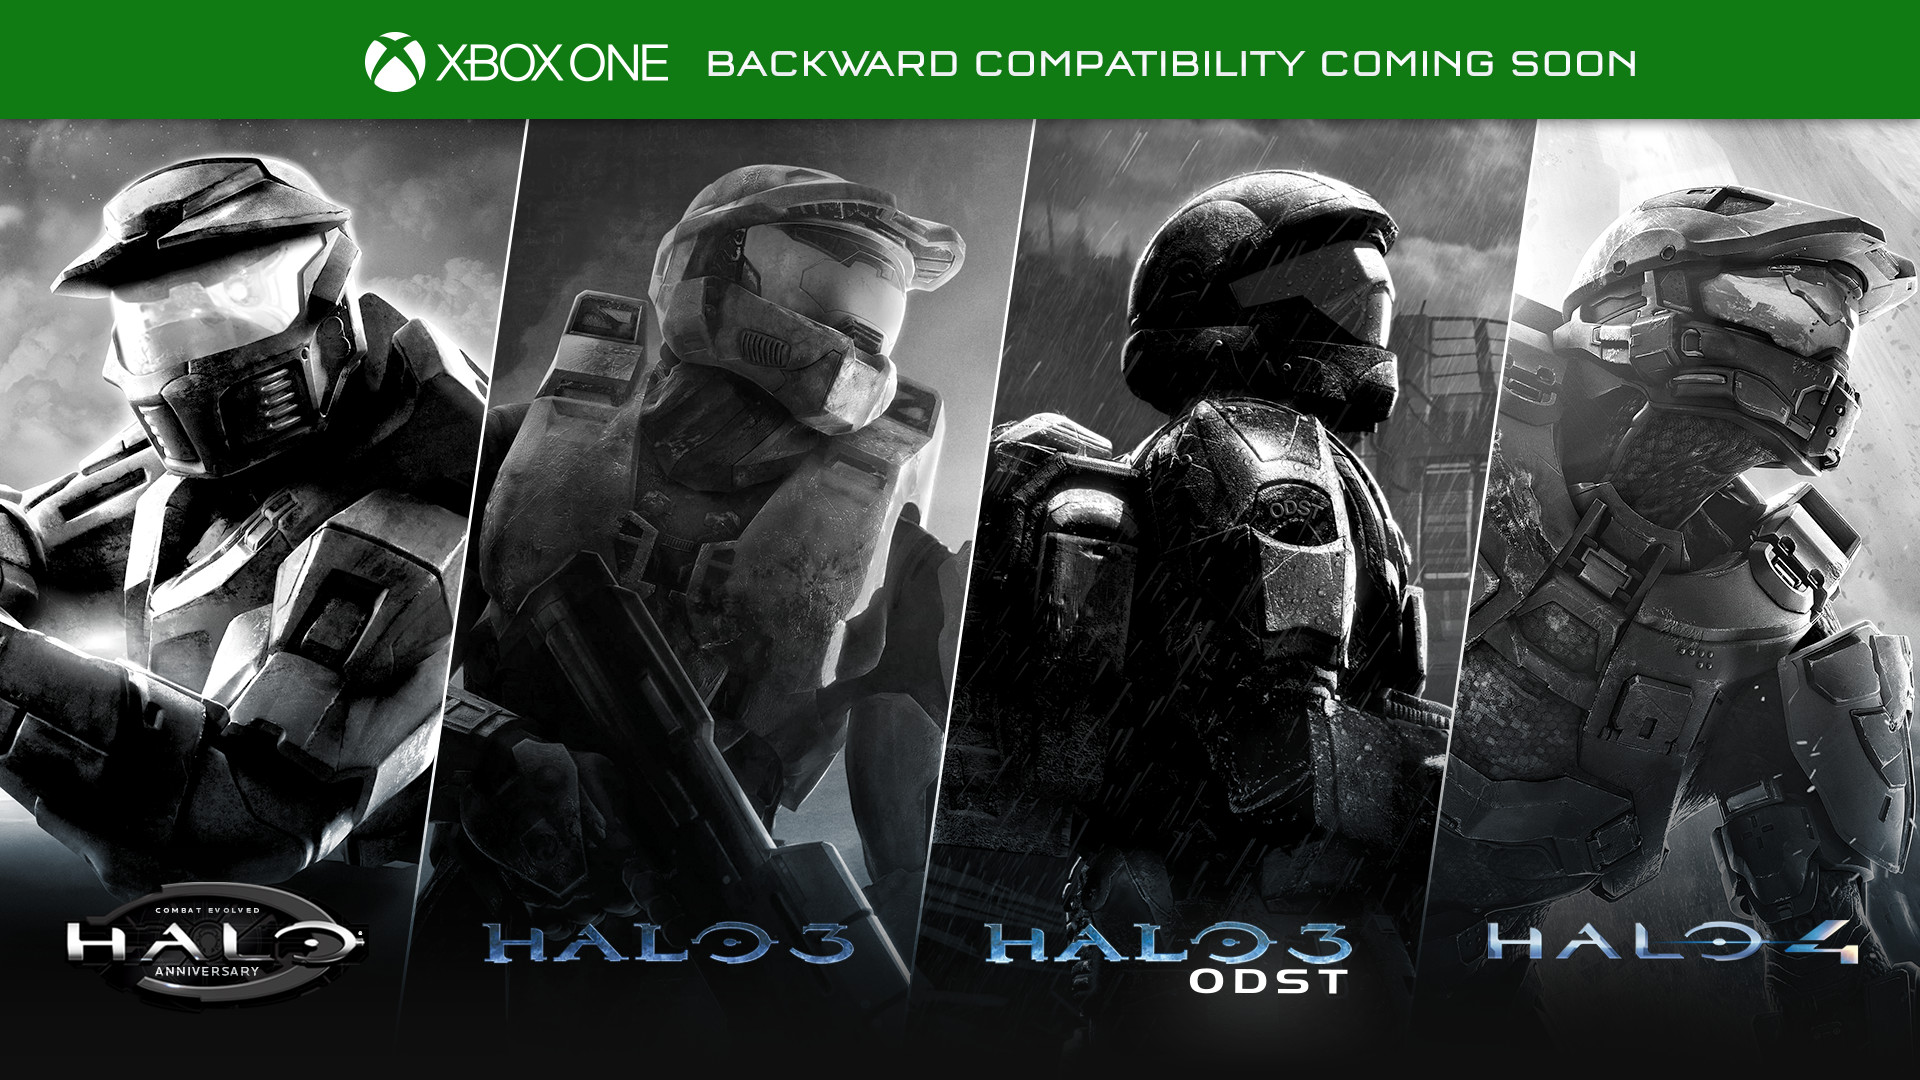 Four Halo games are ing to Xbox e Backward patibility later